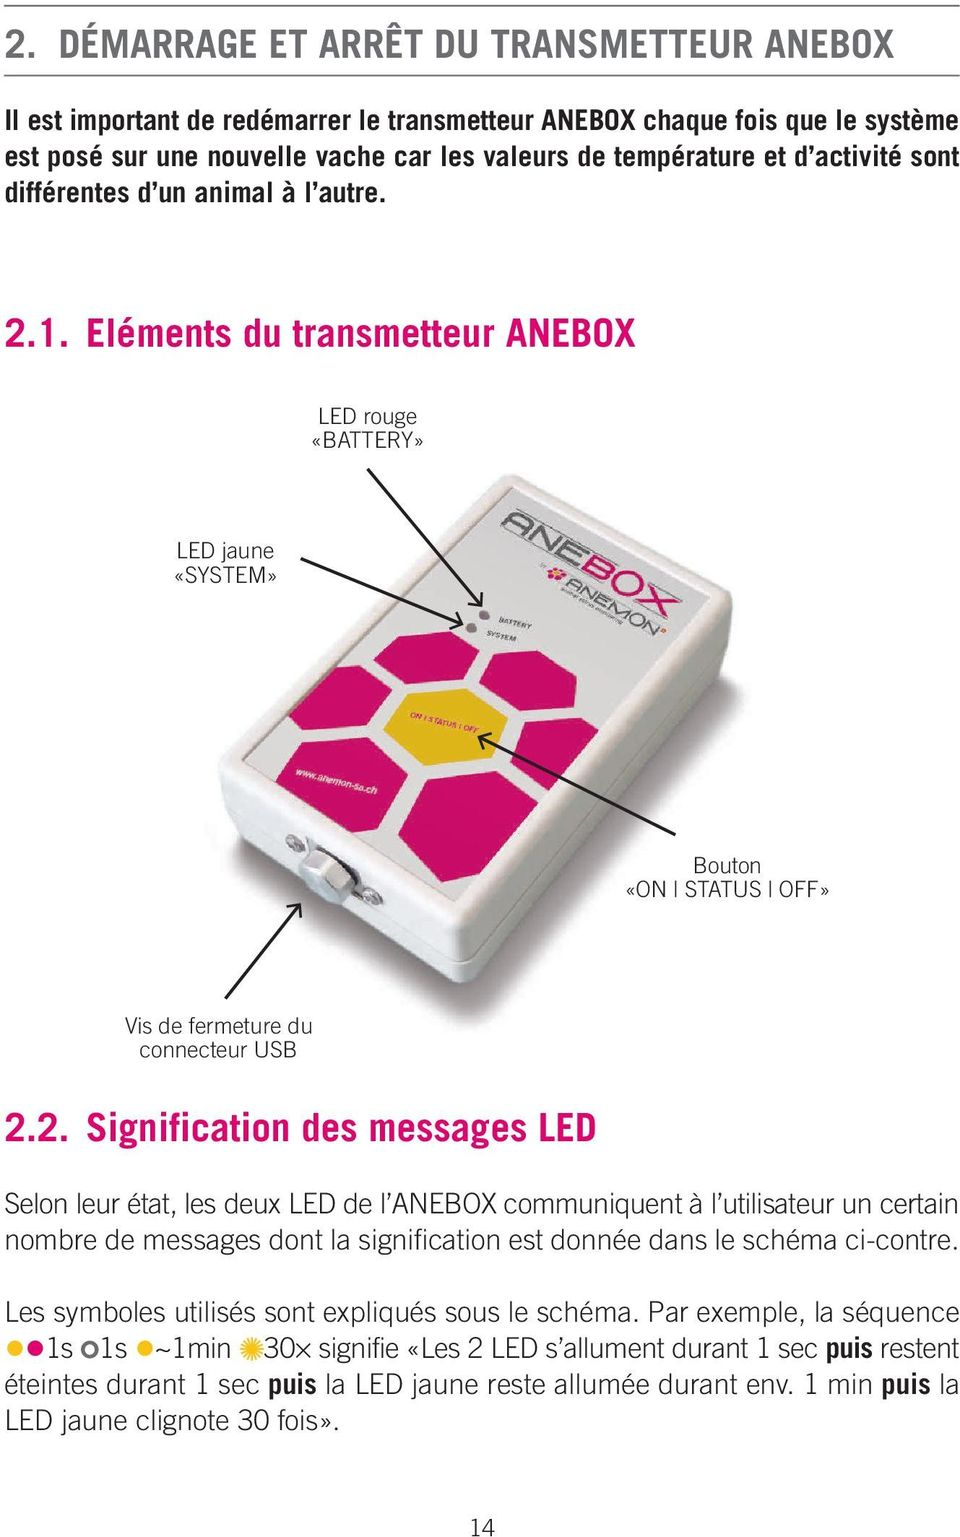 1. Eléments du transmetteur ANEBOX LED rouge «BATTERY» LED jaune «SYSTEM» Bouton «ON STATUS OFF» Vis de fermeture du connecteur USB 2.